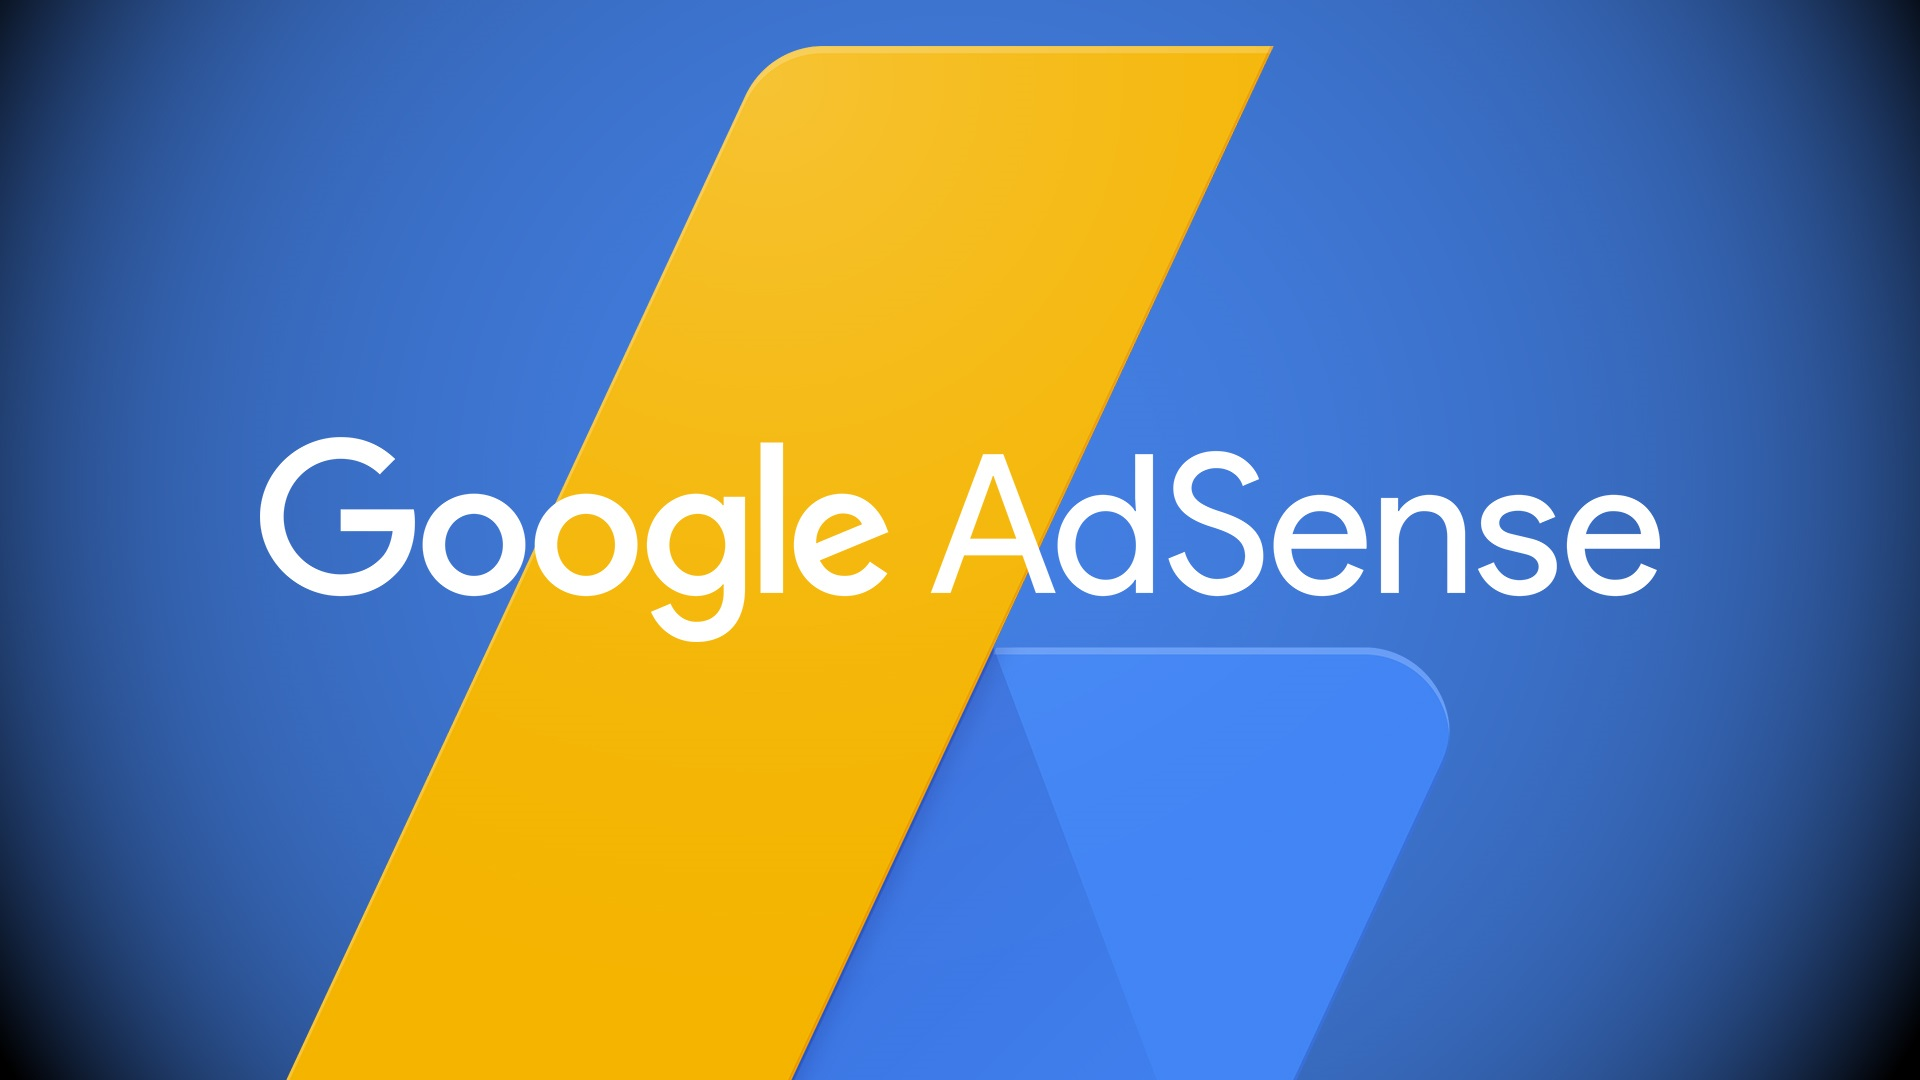 Google Adsense New Wallpaper